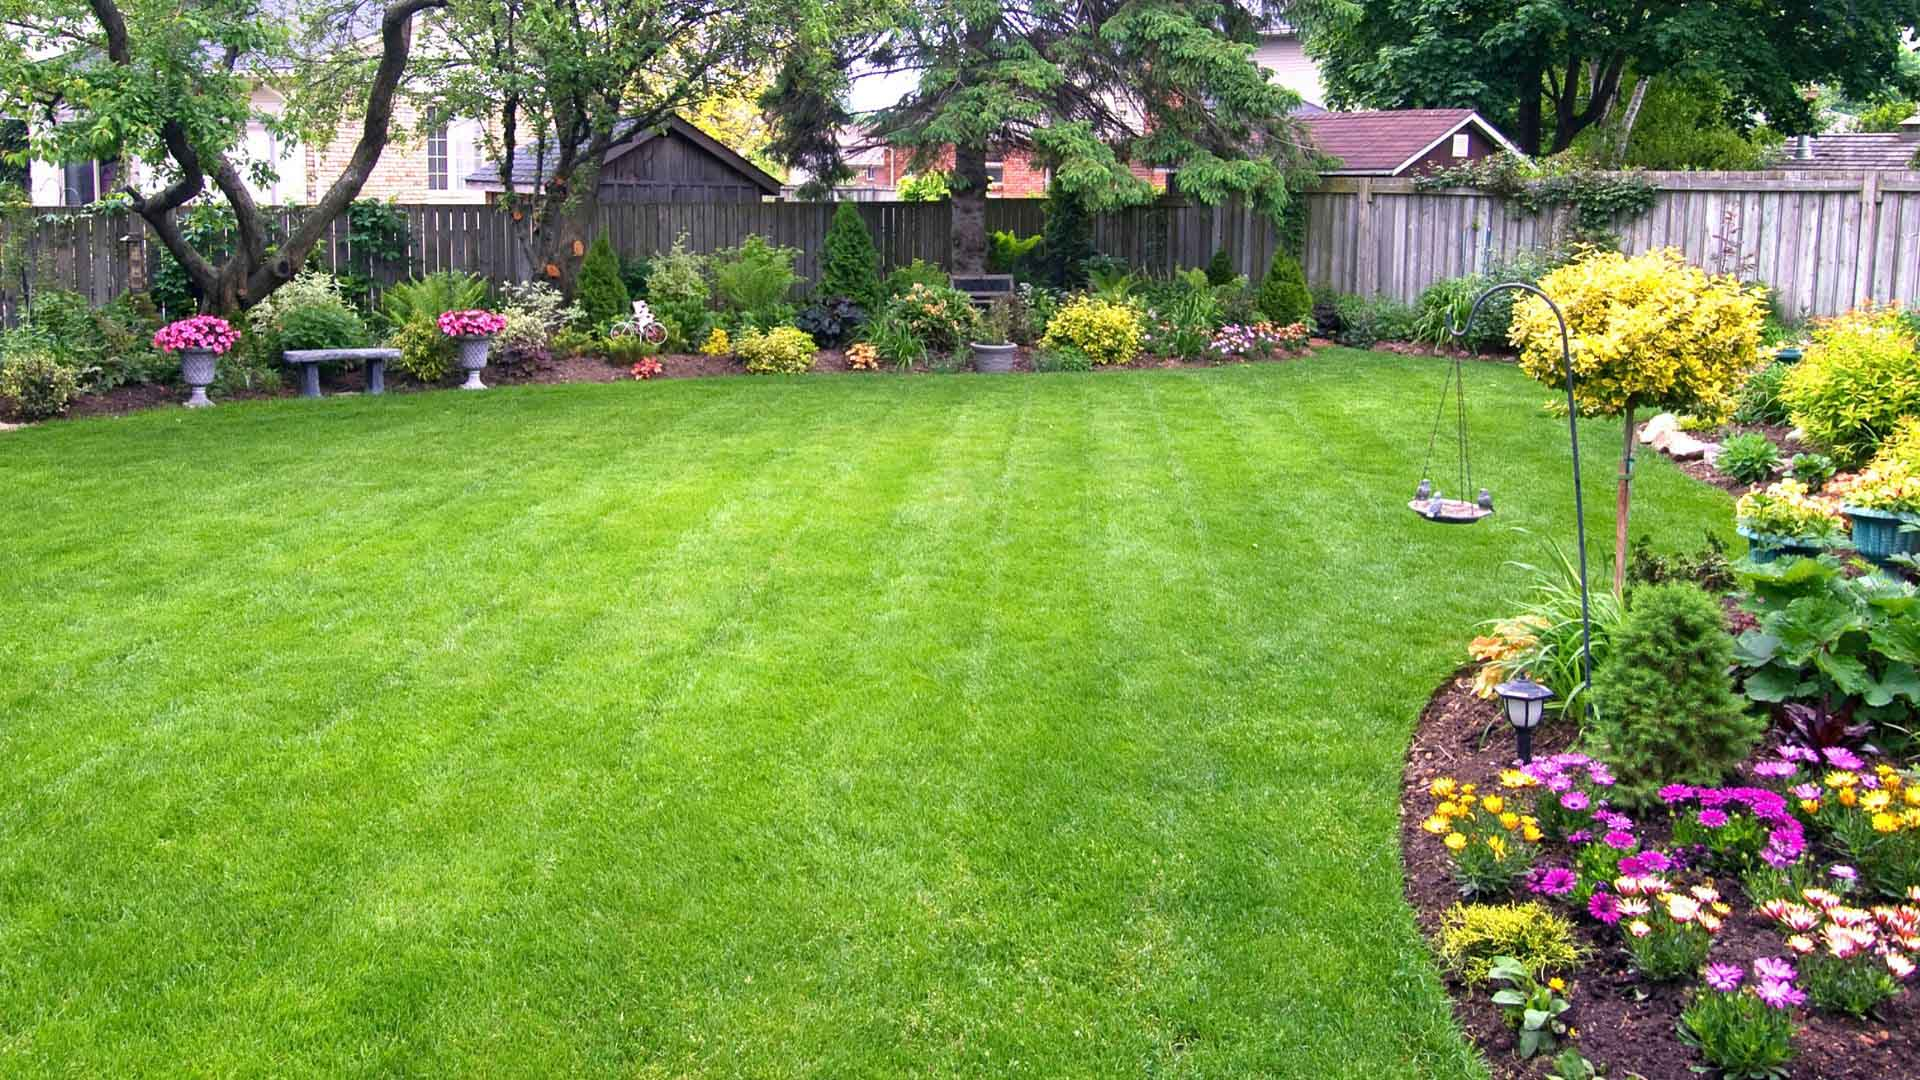 Image of Landscape the Yard